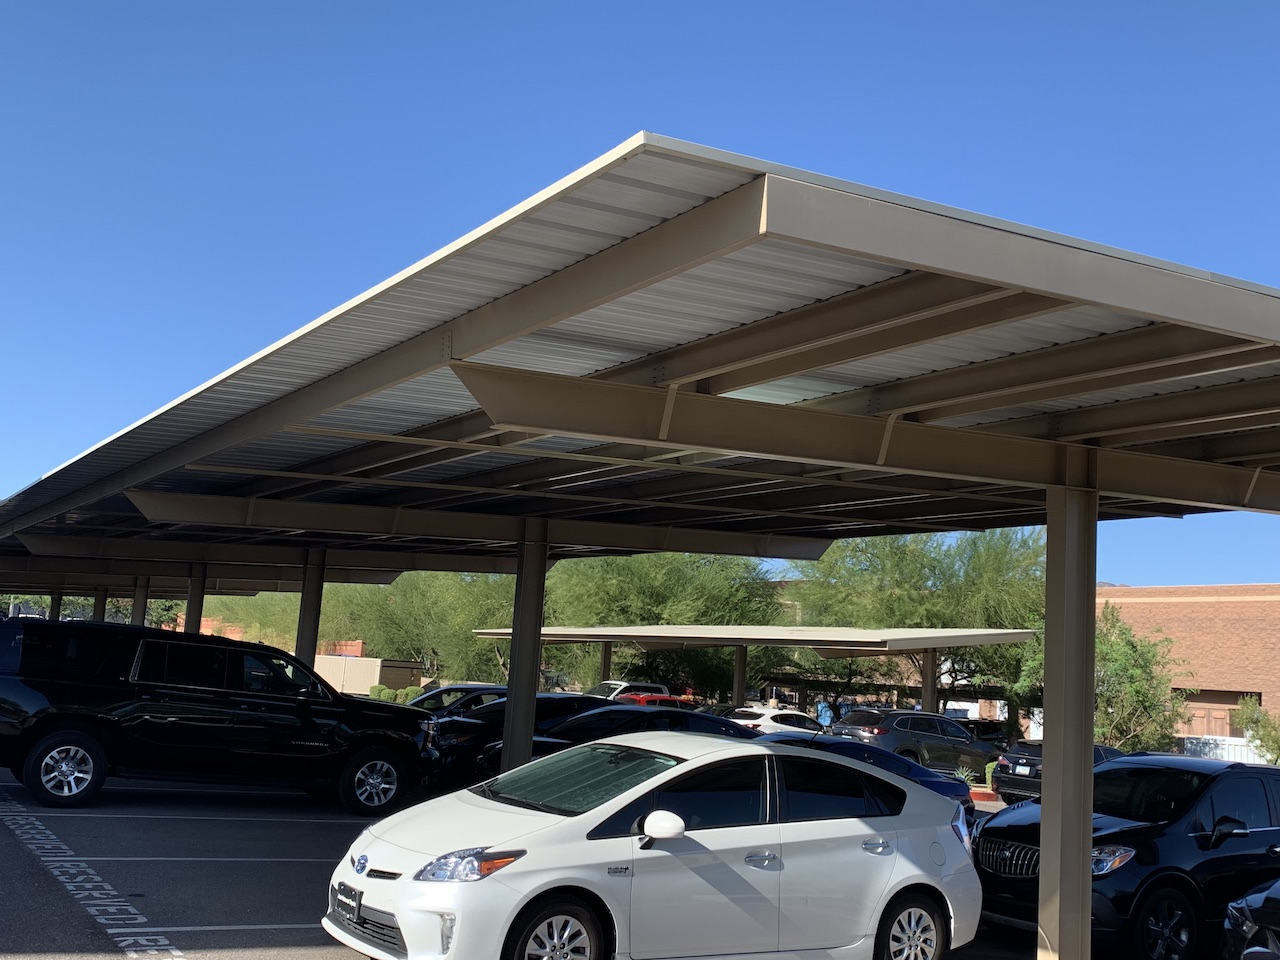 Non solar carports engineered for solar weight & uplift_2